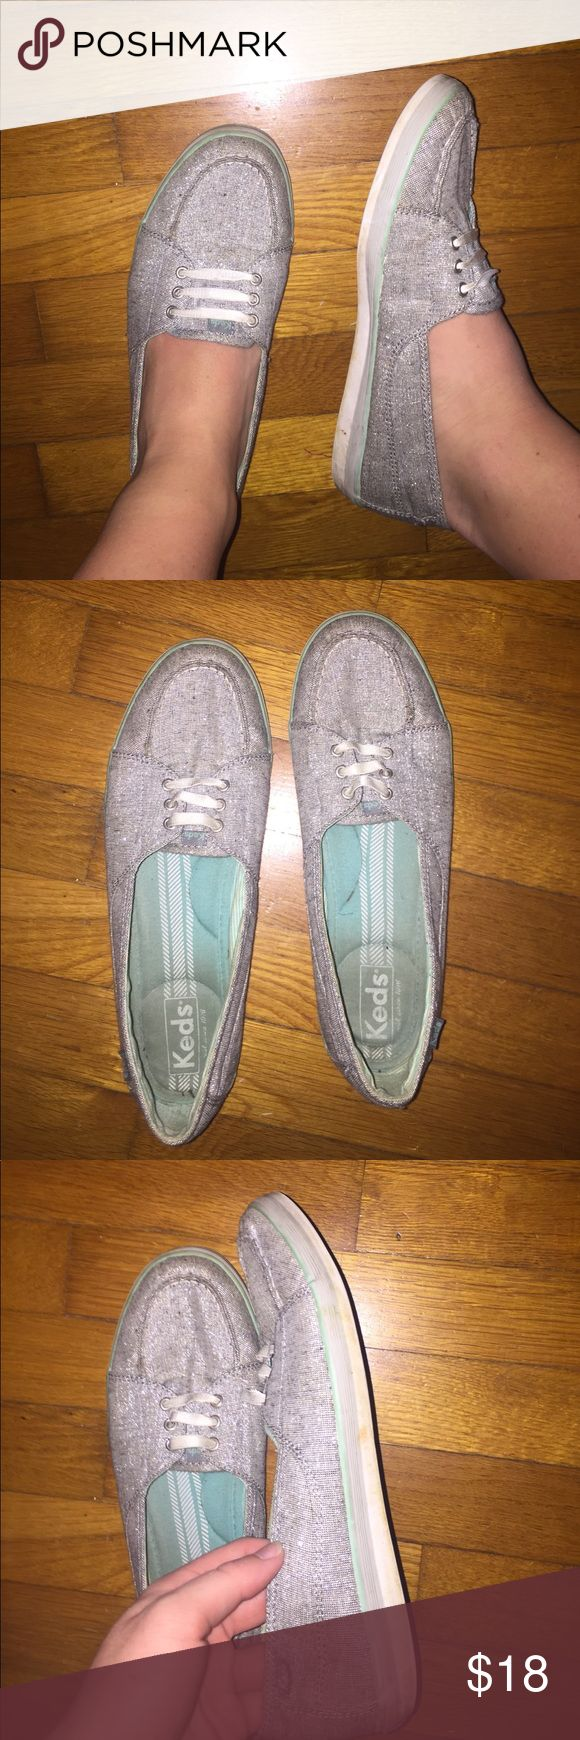 Gray Keds Slip-On Shoes Gray sparkly keds slip ons. Green memory foam on the inside. Pretty gently used, in good condition. Feel free to ask questions. Keds Shoes Flats & Loafers